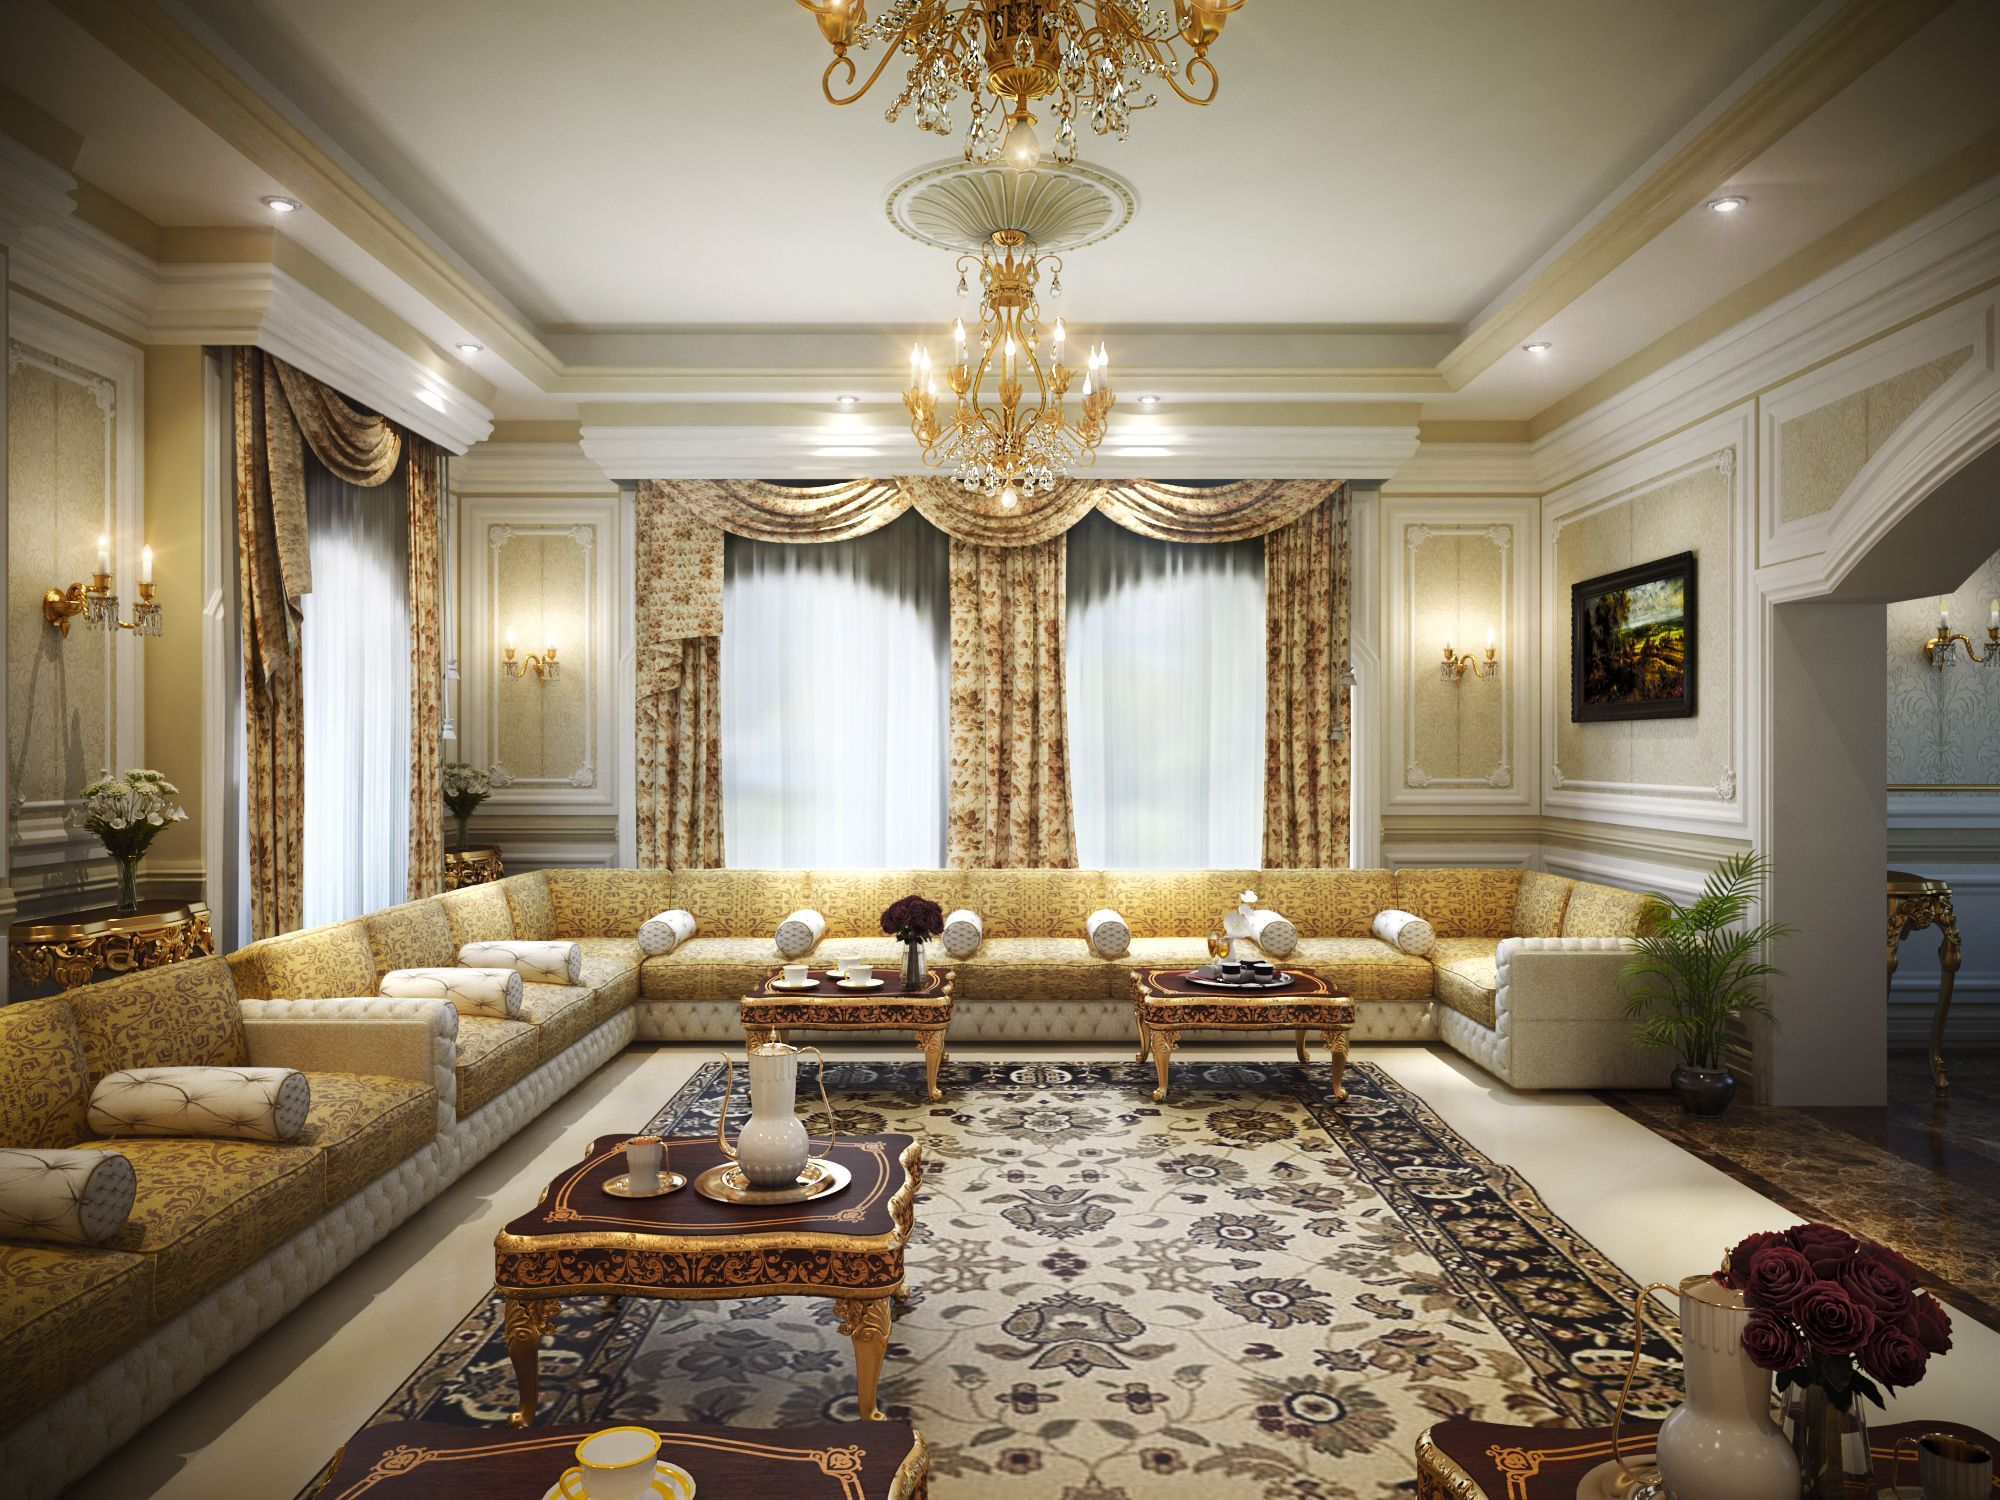 Luxury Majlis Visualization Classical Design Arabic